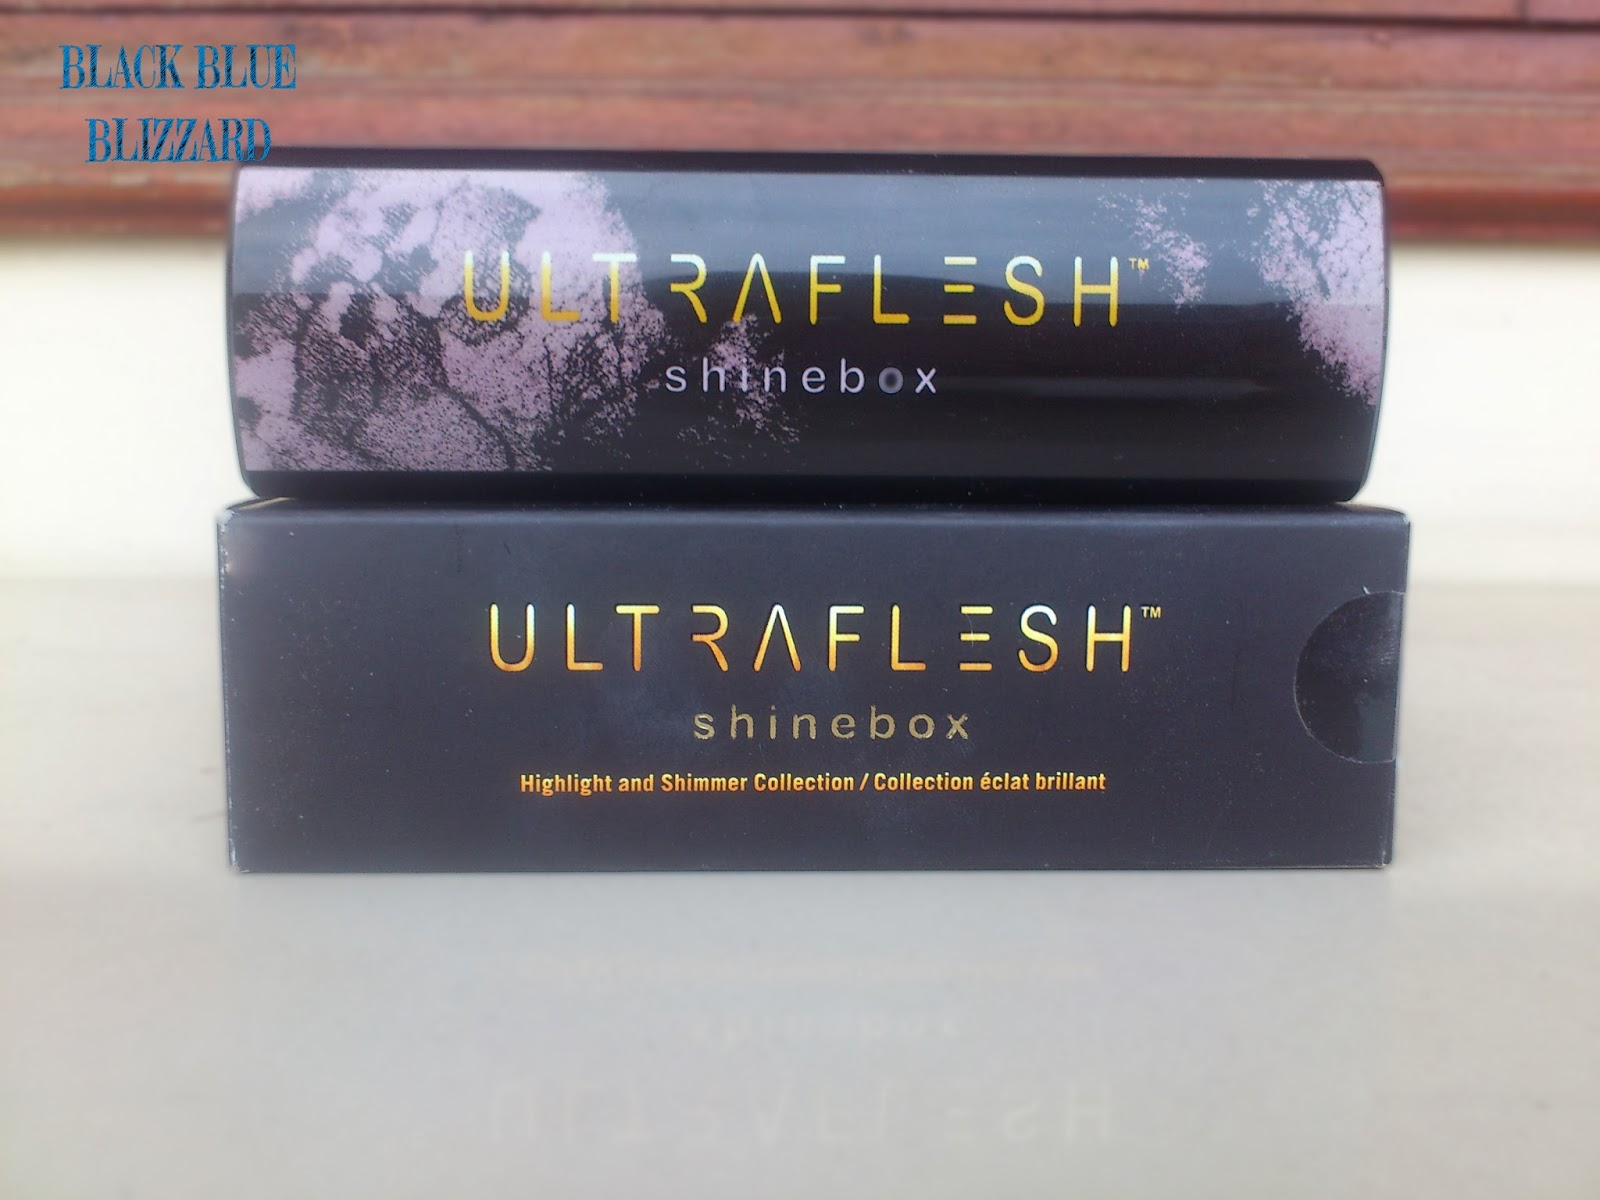 ultraflesh, ultraflesh shinebox, higlighter, shimmer, enhancer, review blogger, strawberyNET